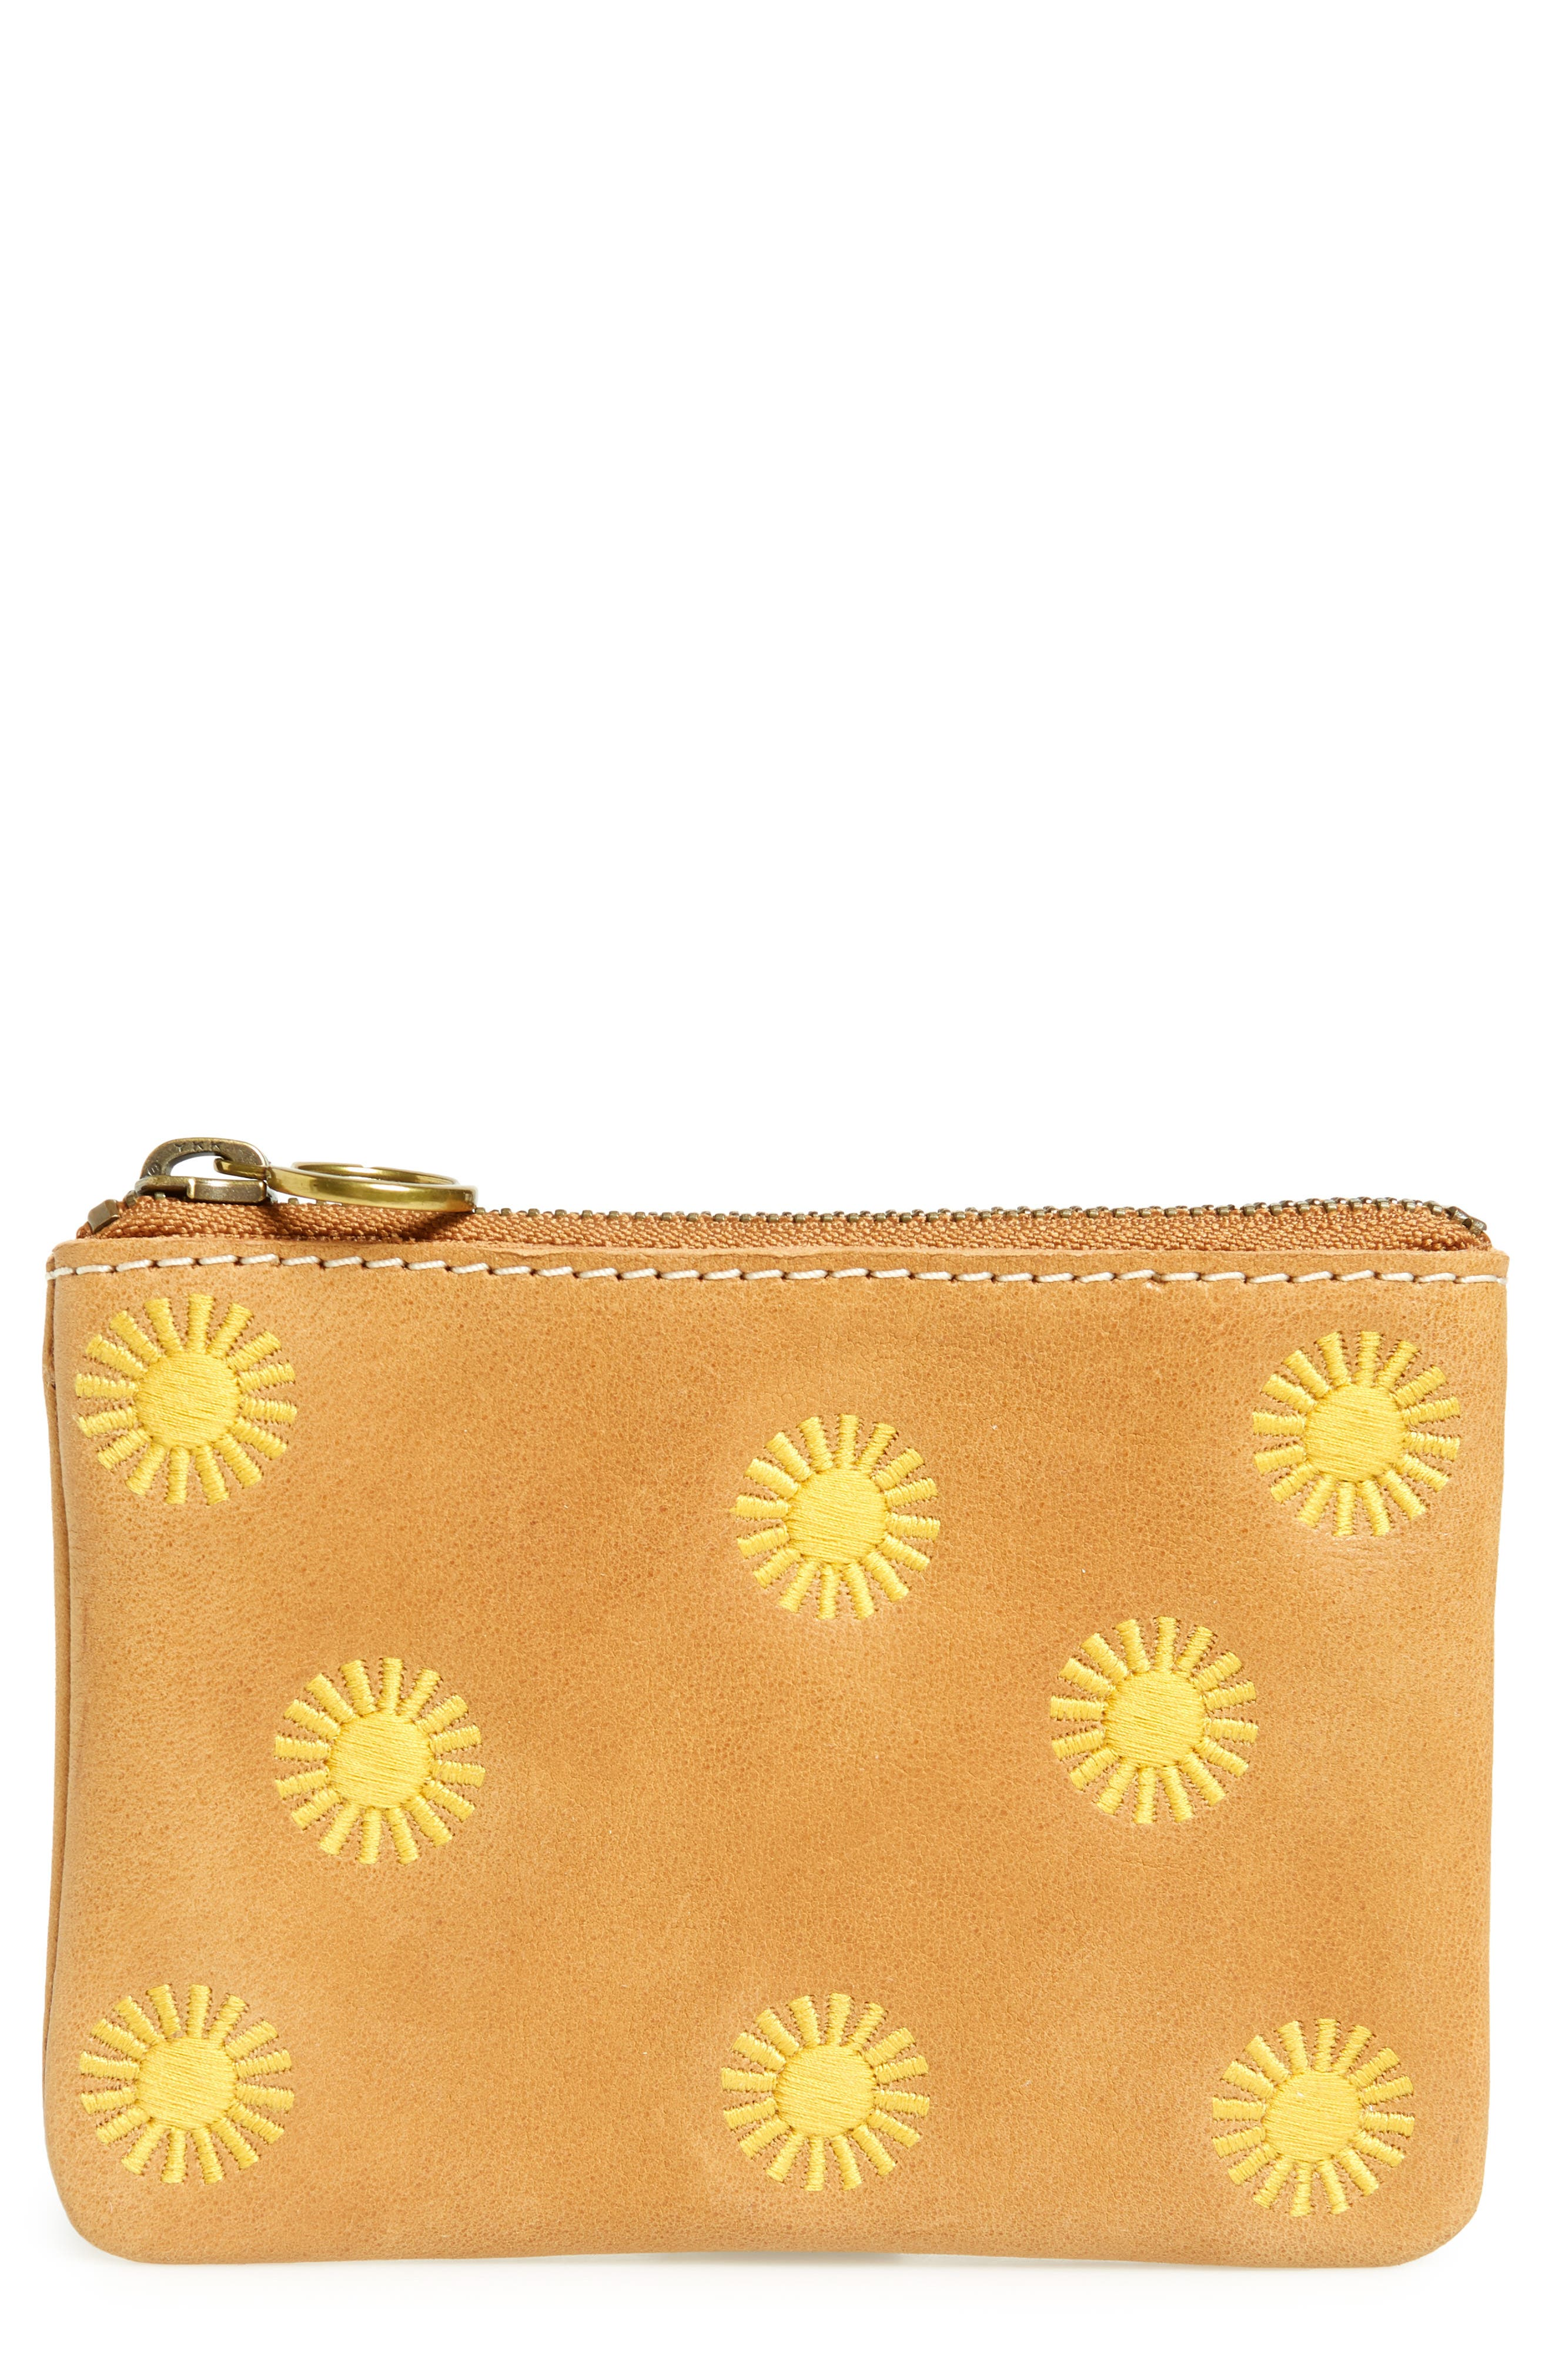 Sun Embroidered Small Flat Zip Pouch,                         Main,                         color, Burnished Caramel